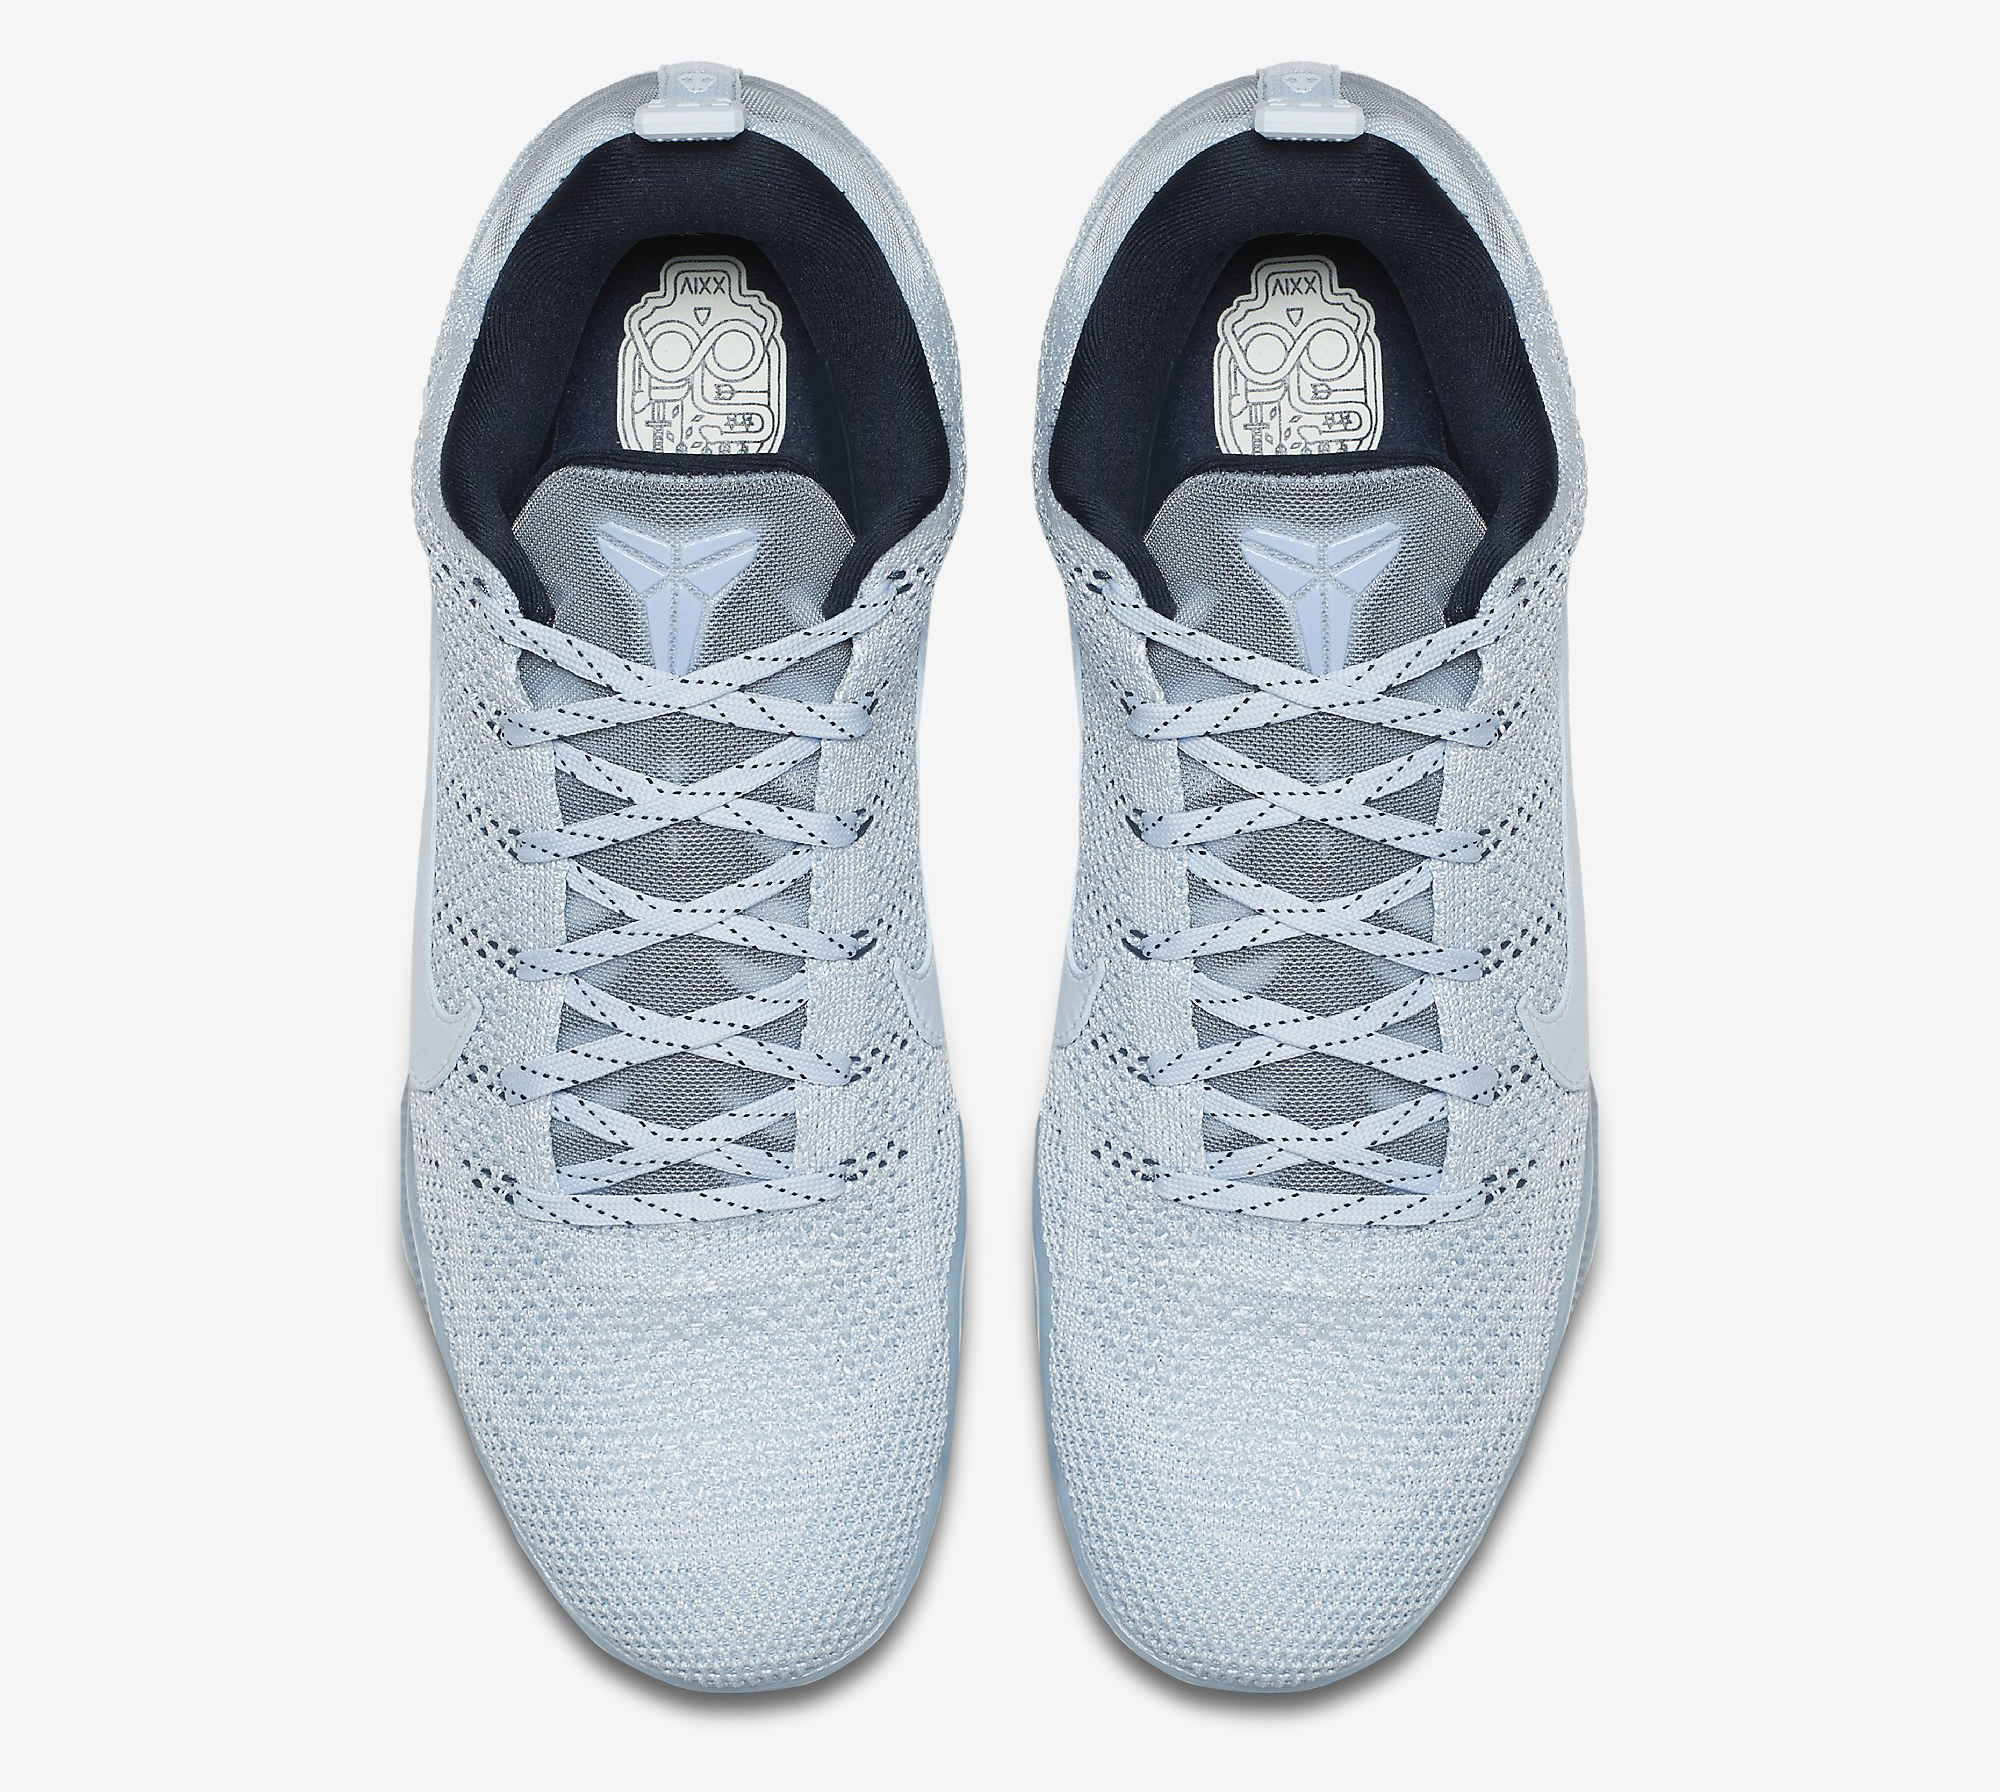 Nike Kobe 11 4KB Pale Horse 824463-443 Top